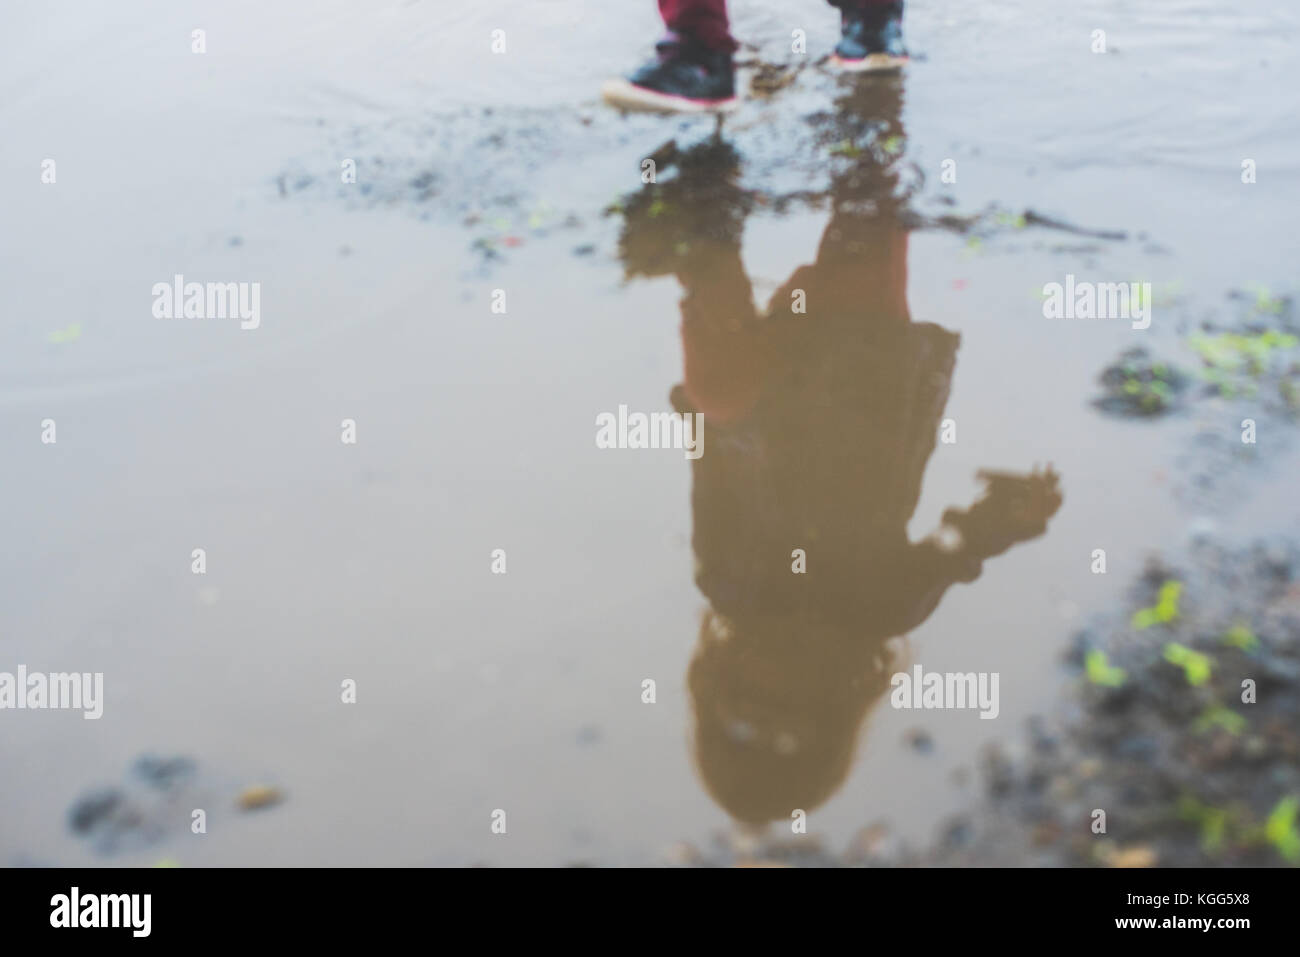 Child walking in a mud puddle Stock Photo